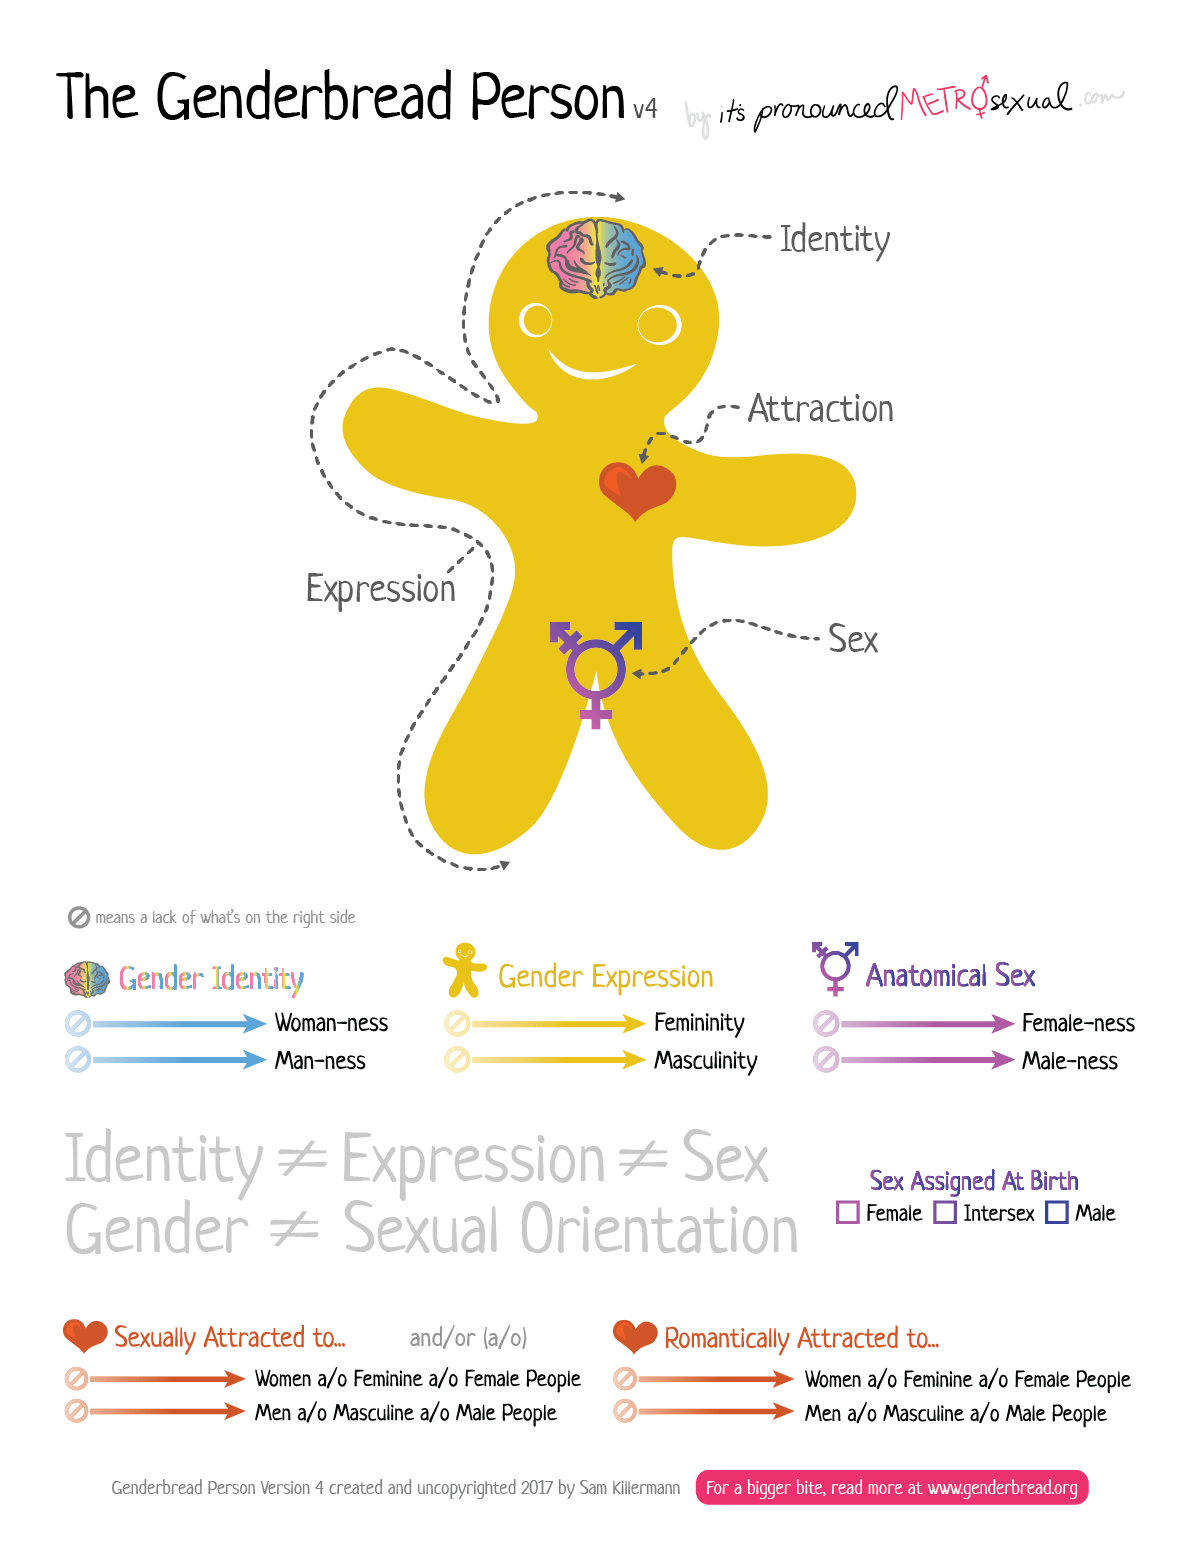 The Genderbread Person V4